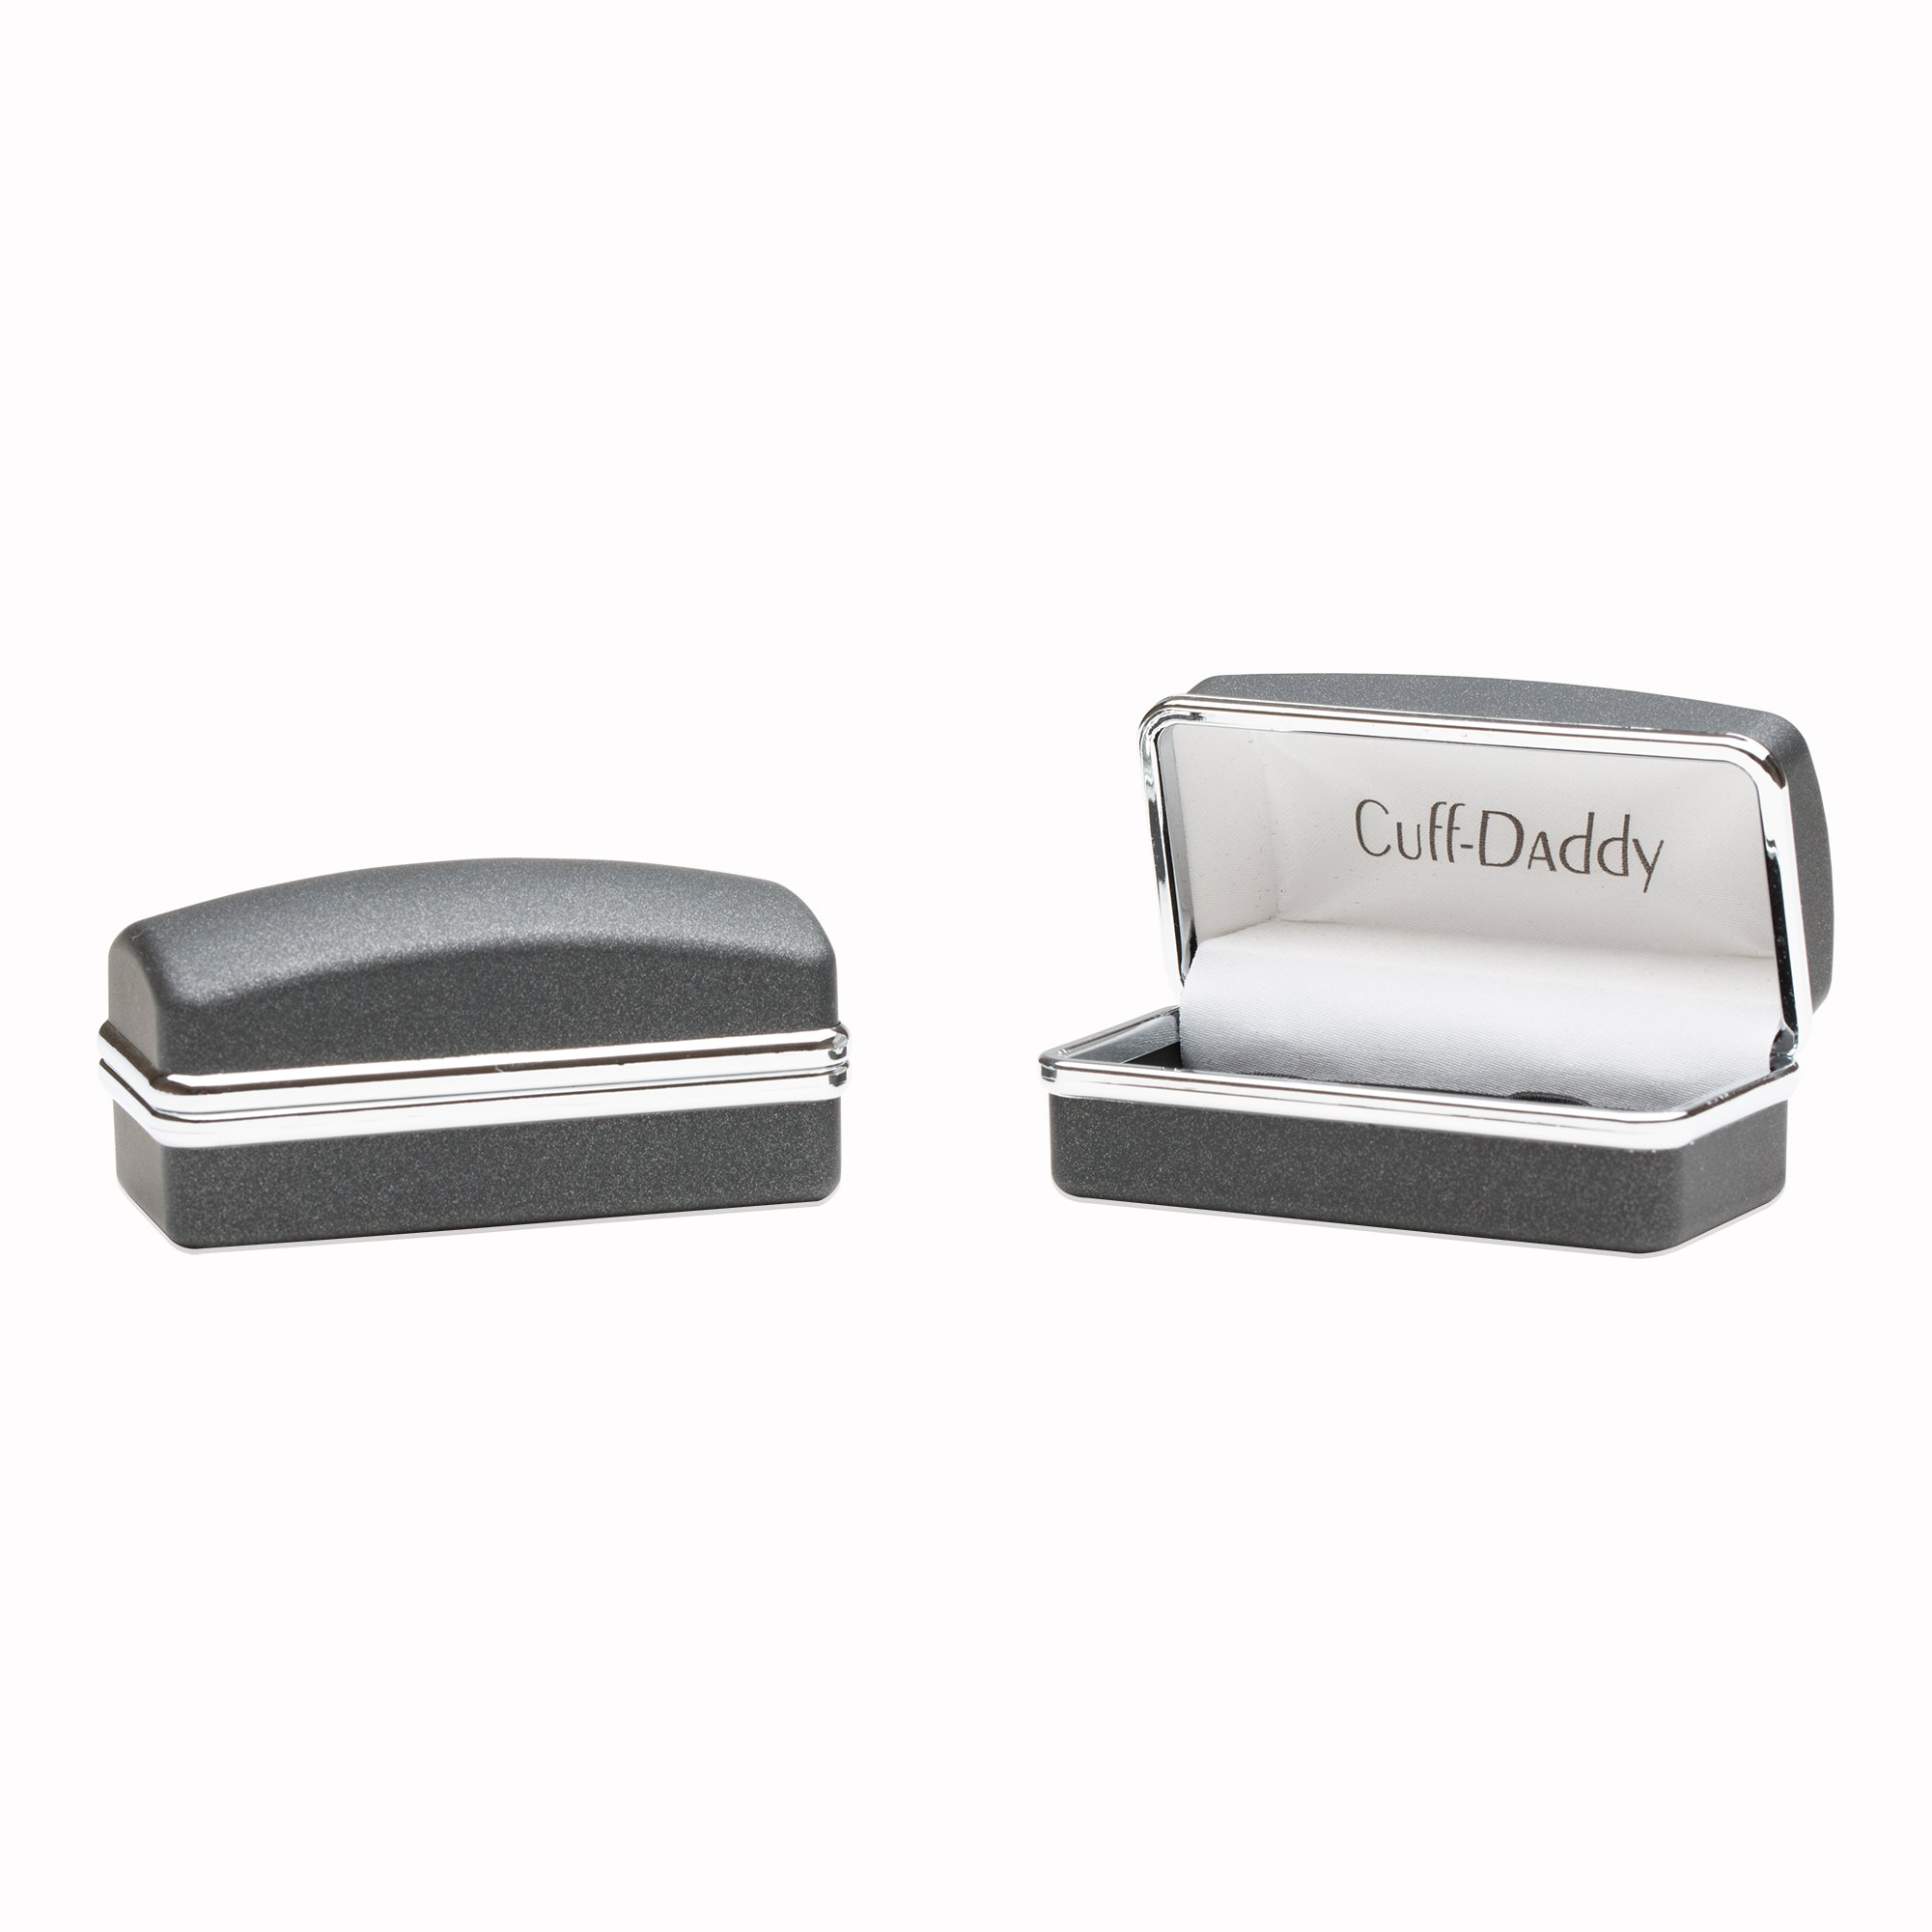 Cuff-Daddy Construction Hammer Saw Cufflinks for Carpenters by Cuff-Daddy (Image #2)